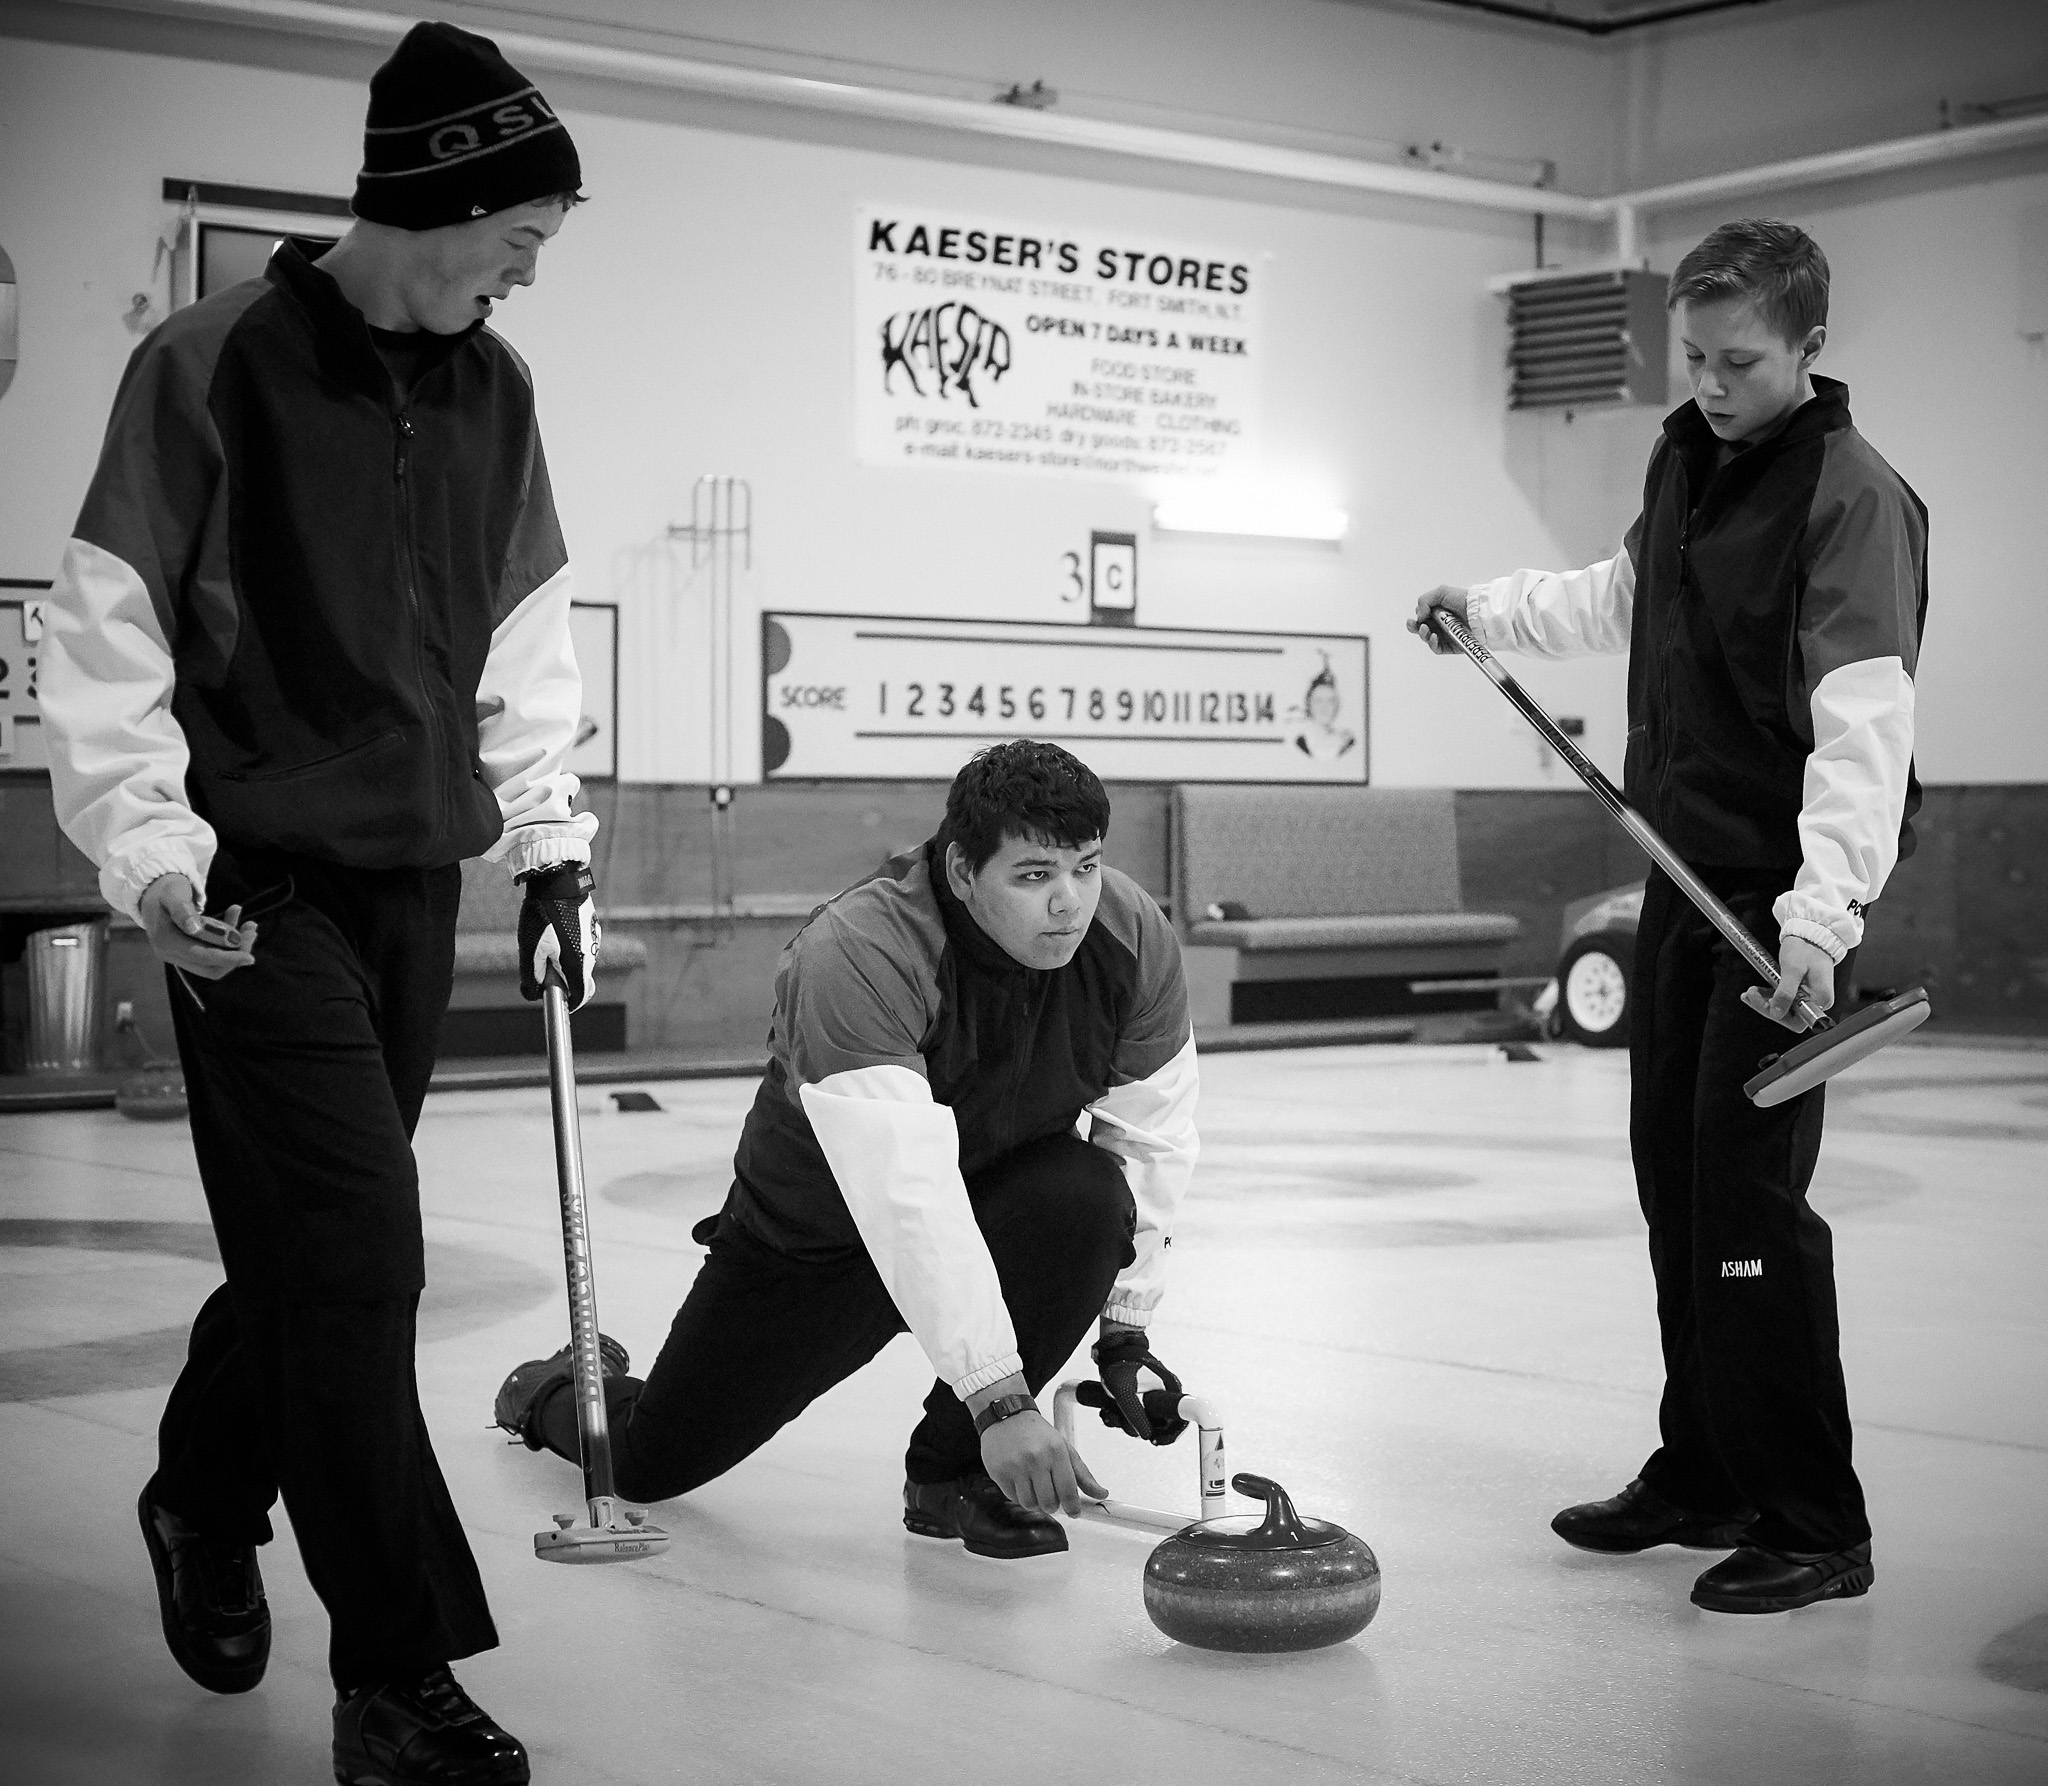 _O3Q7071_2018-Arctic-Winter-Games_Web-Gallery-JPEG-80-Full-Size-(sRGB).jpg